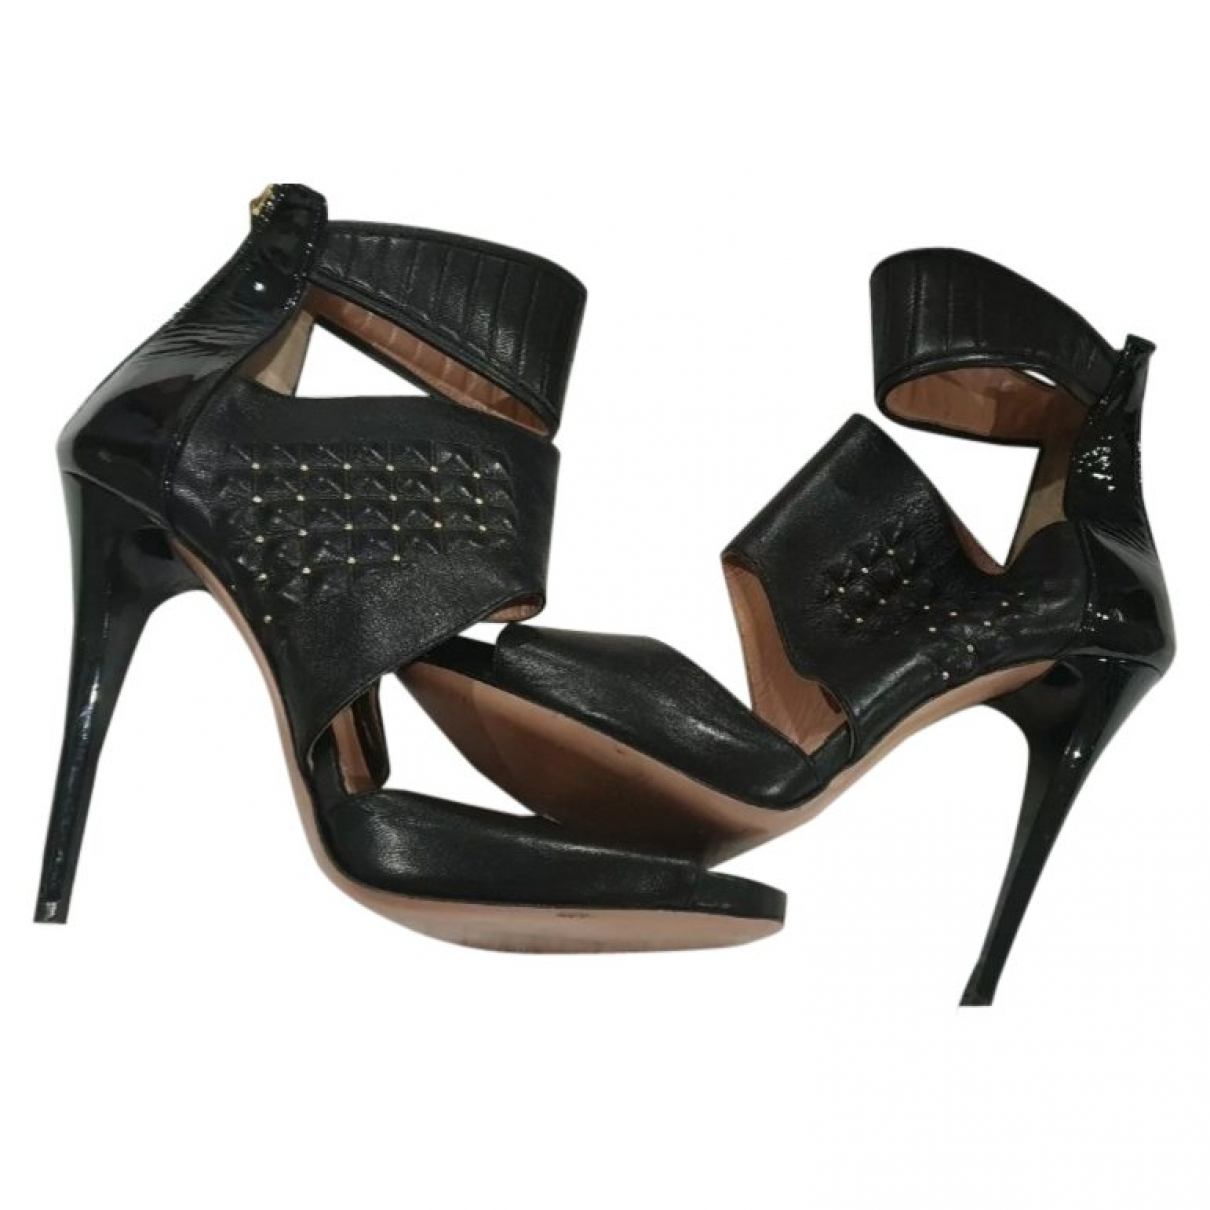 Pinko \N Black Leather Heels for Women 38 EU